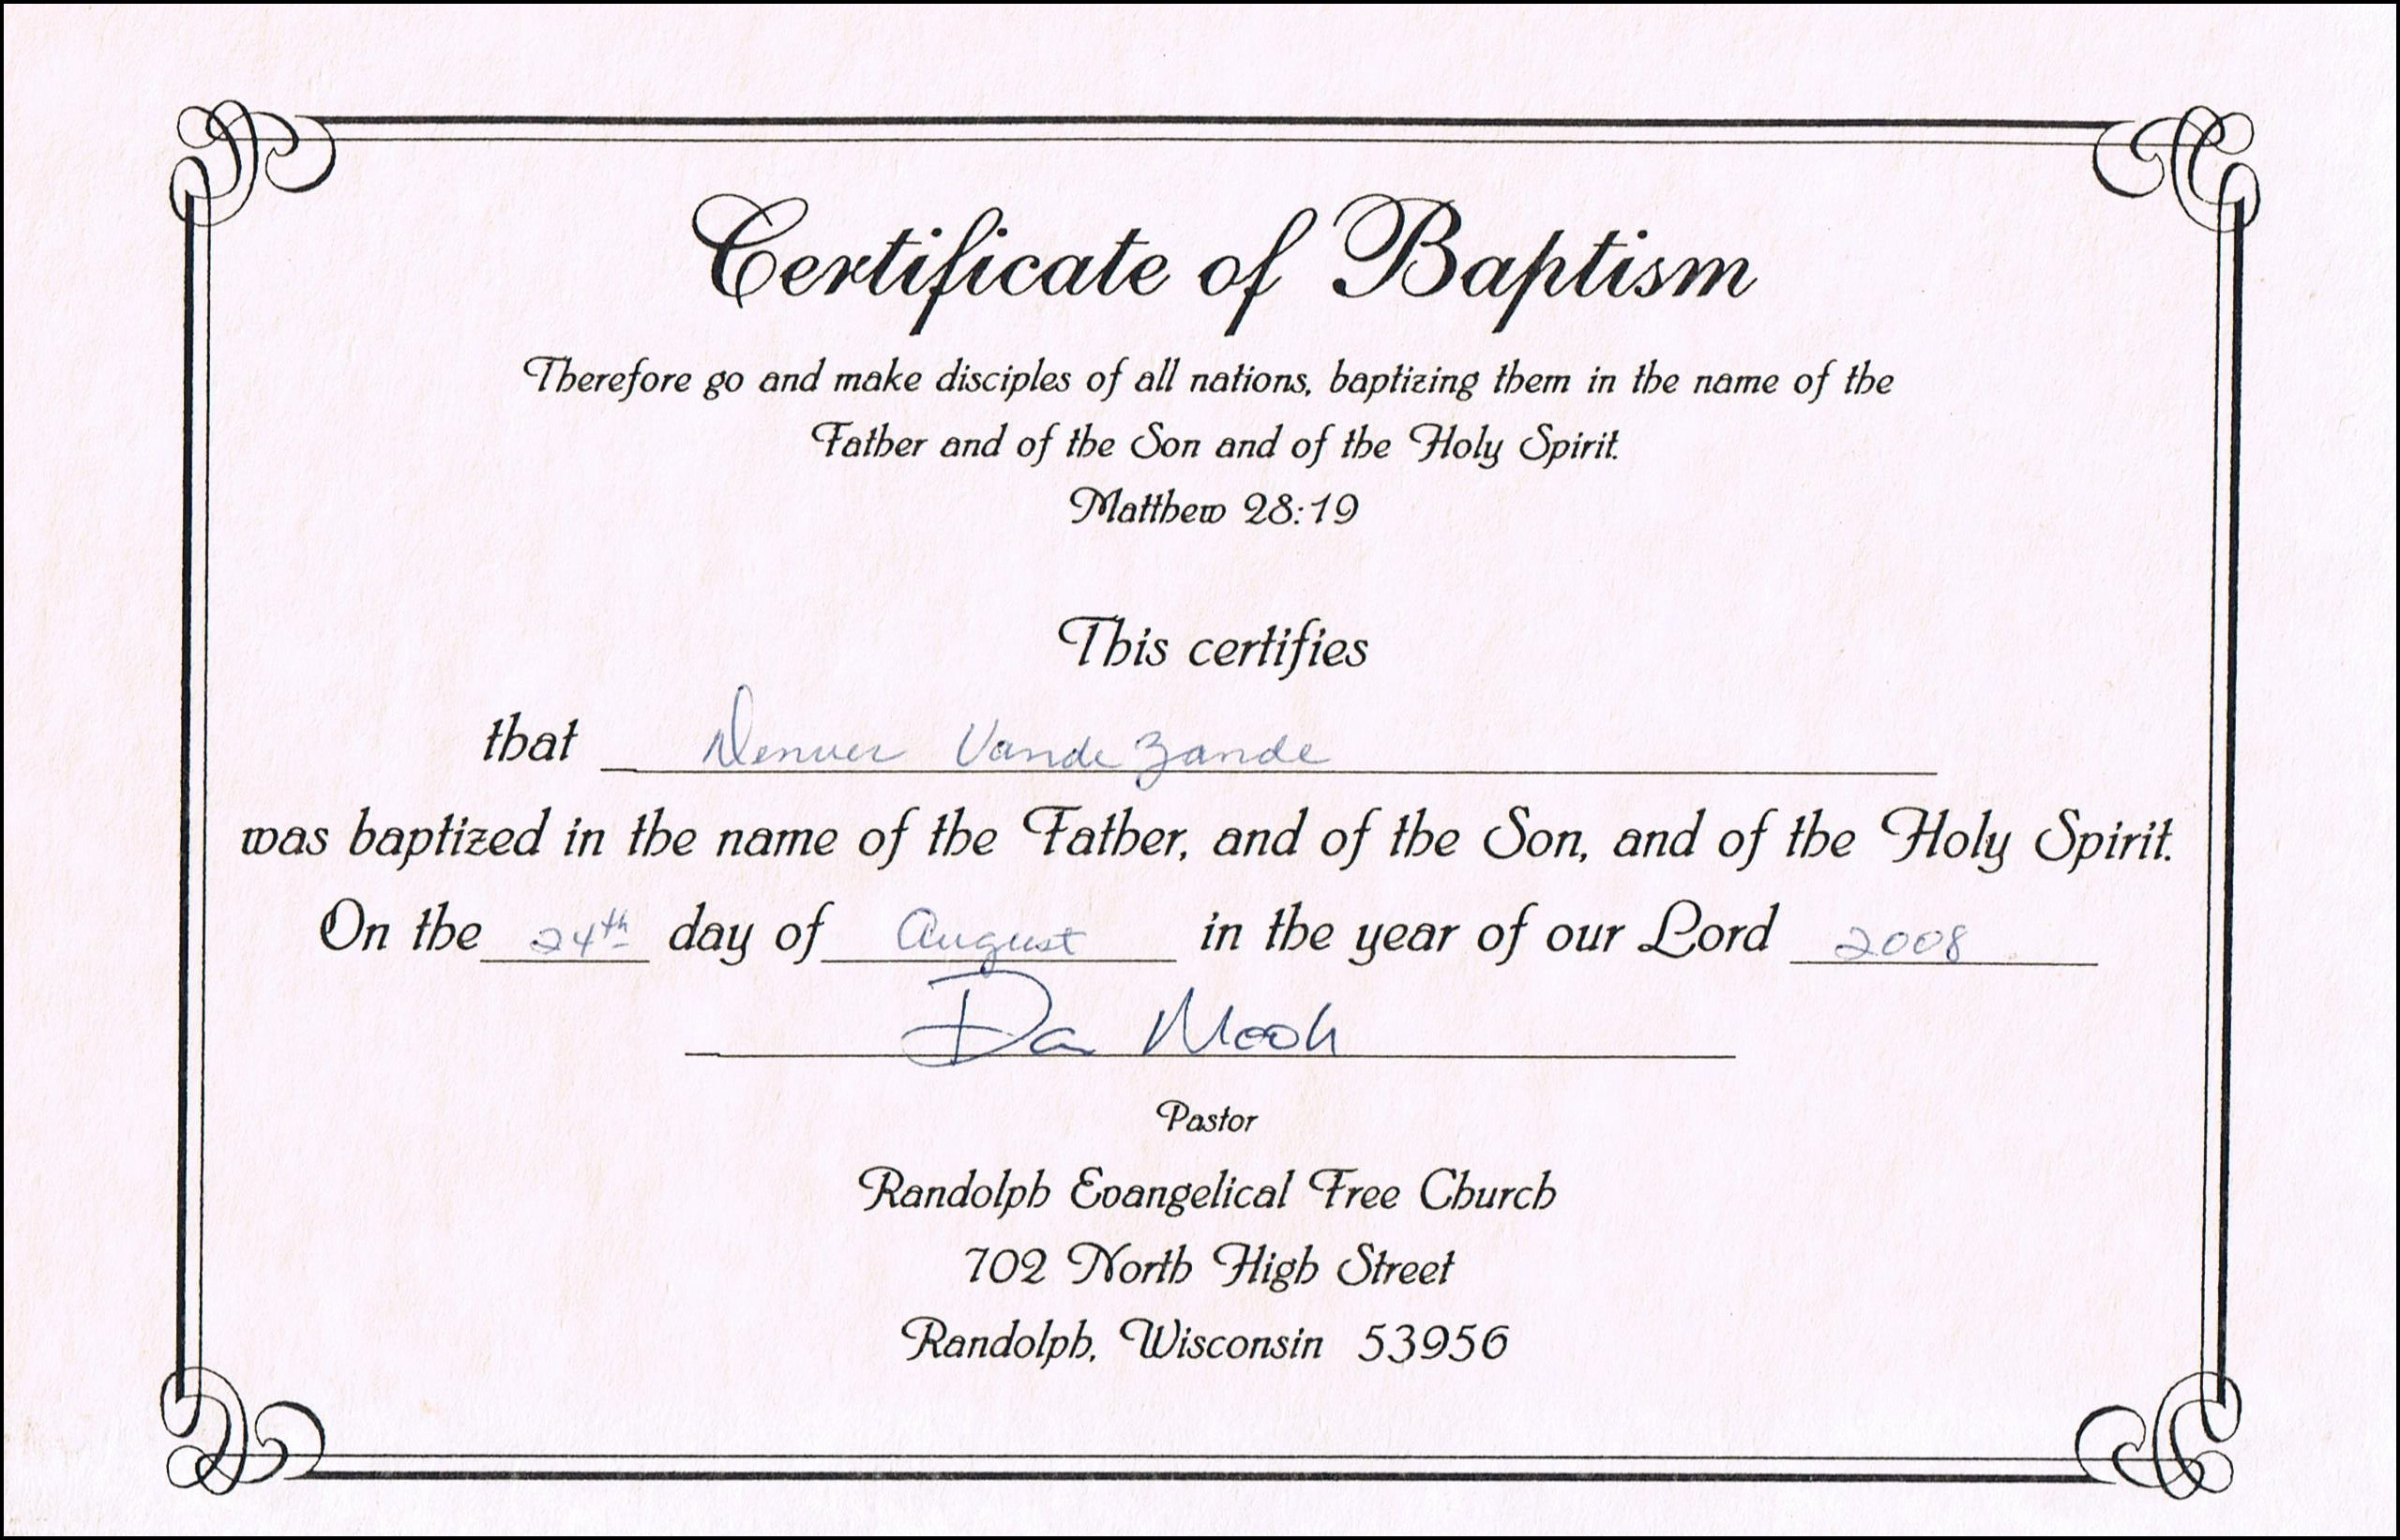 Baptism Certificate Template Word Lovely Baptism Certificate Templates for Word